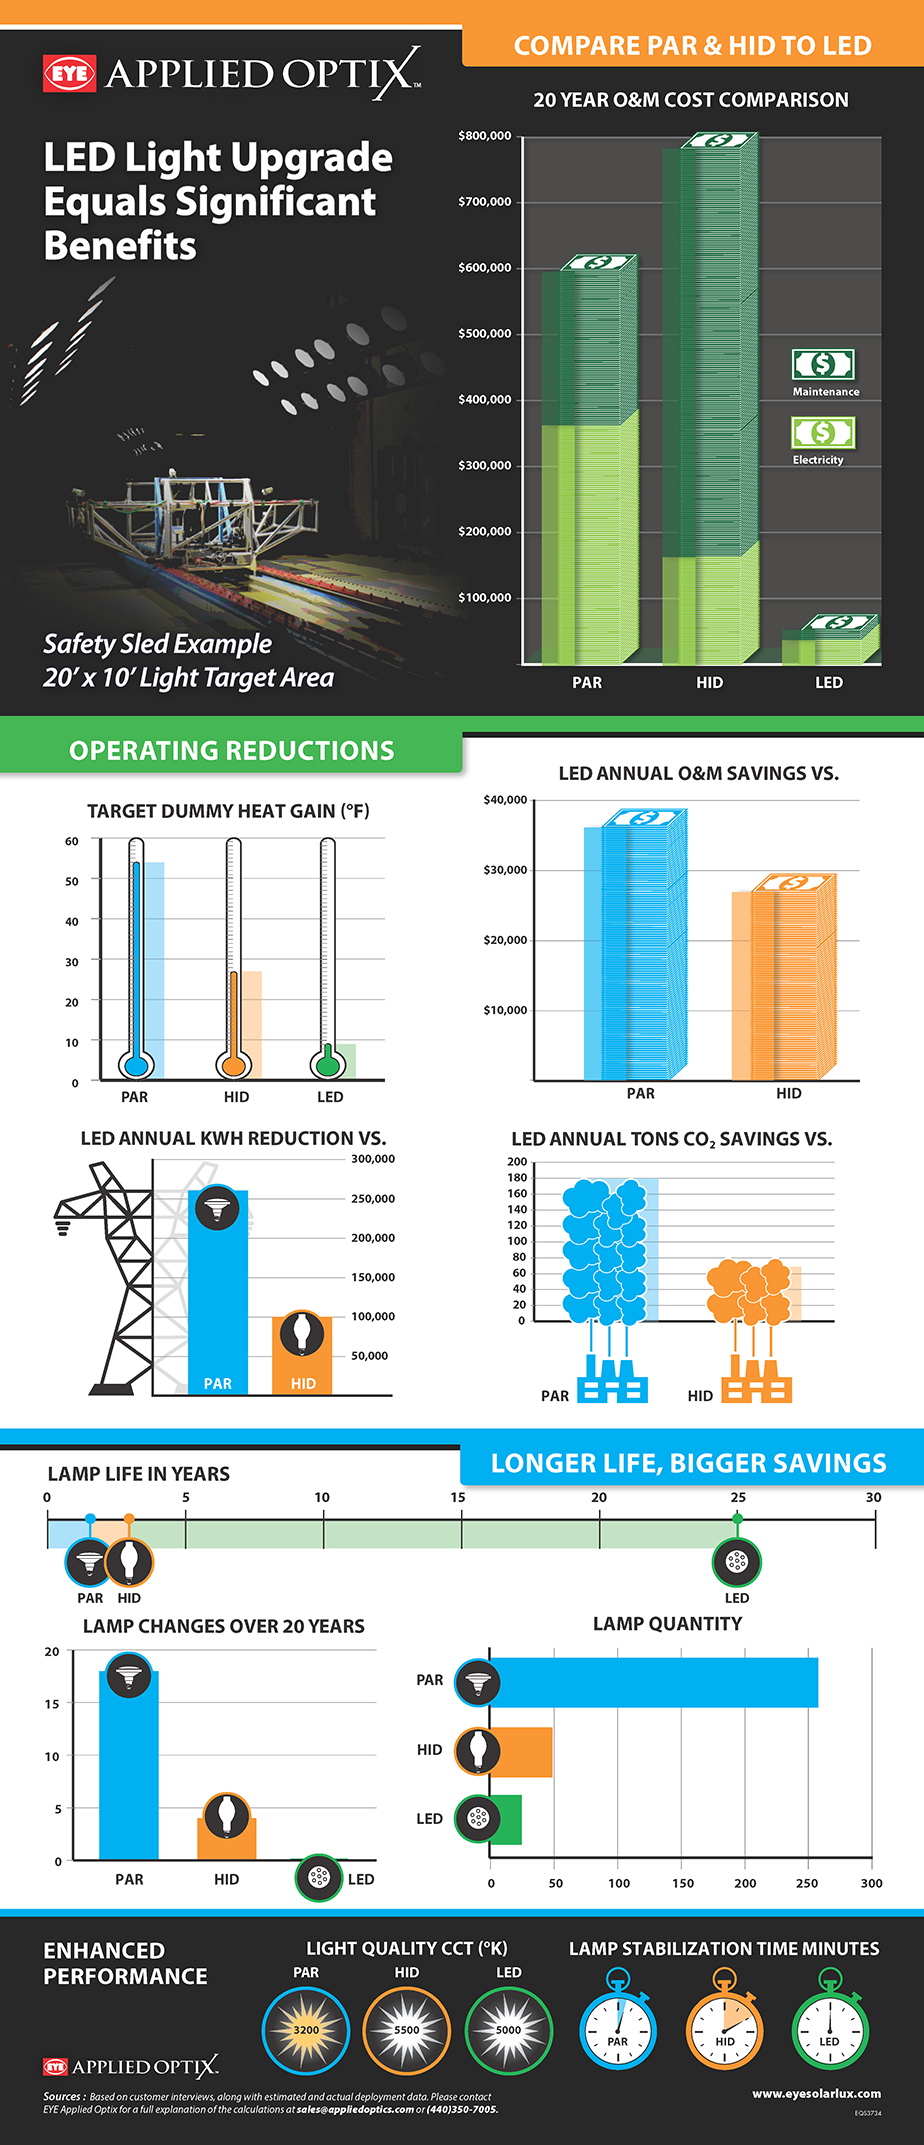 You can download this image or request a full-size printed version of the Infographic-LED Light Upgrade Equals Significant Benefits